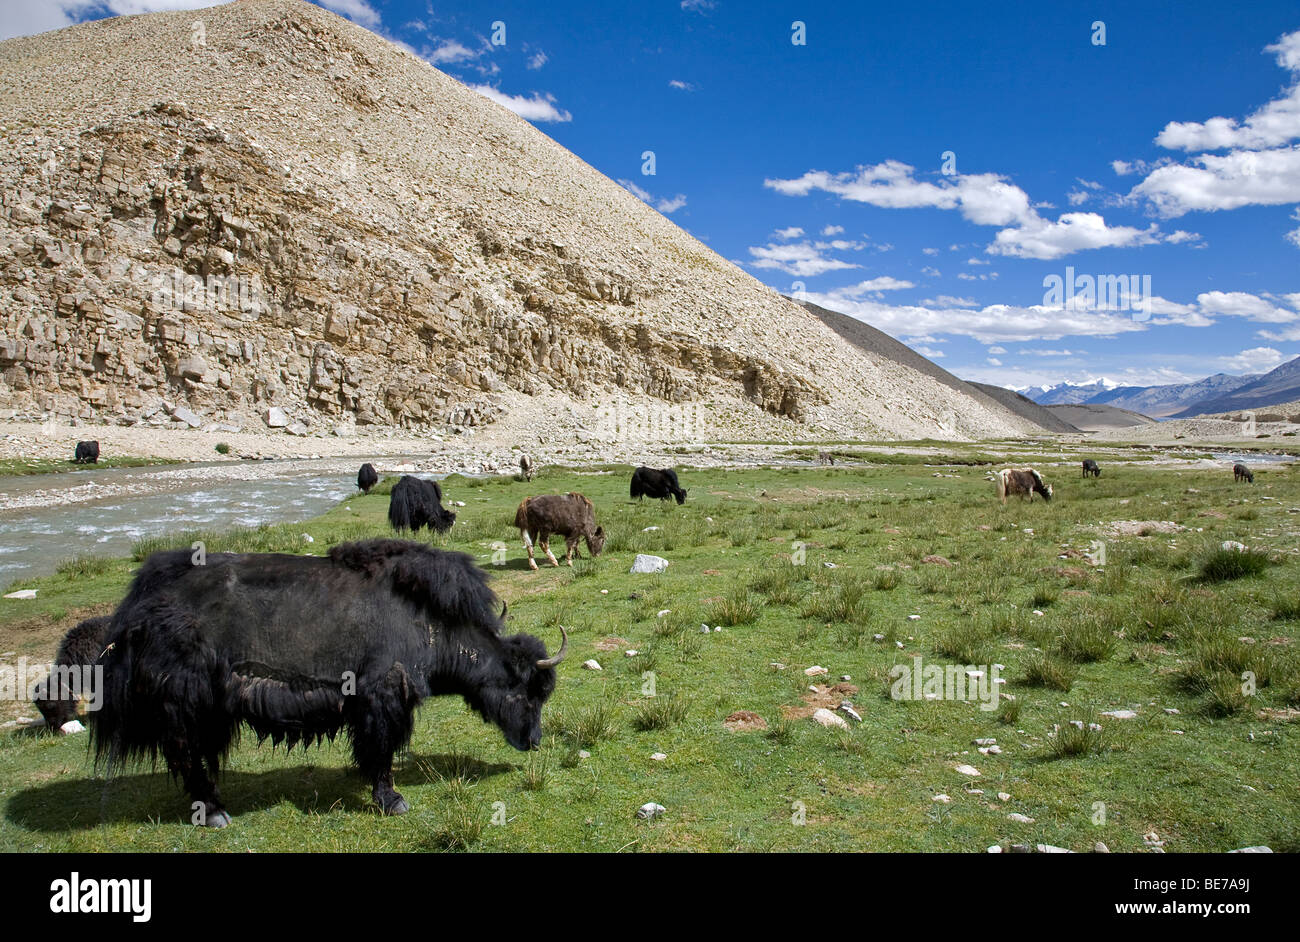 Yaks. Rupsu Valley. Ladakh. India - Stock Image